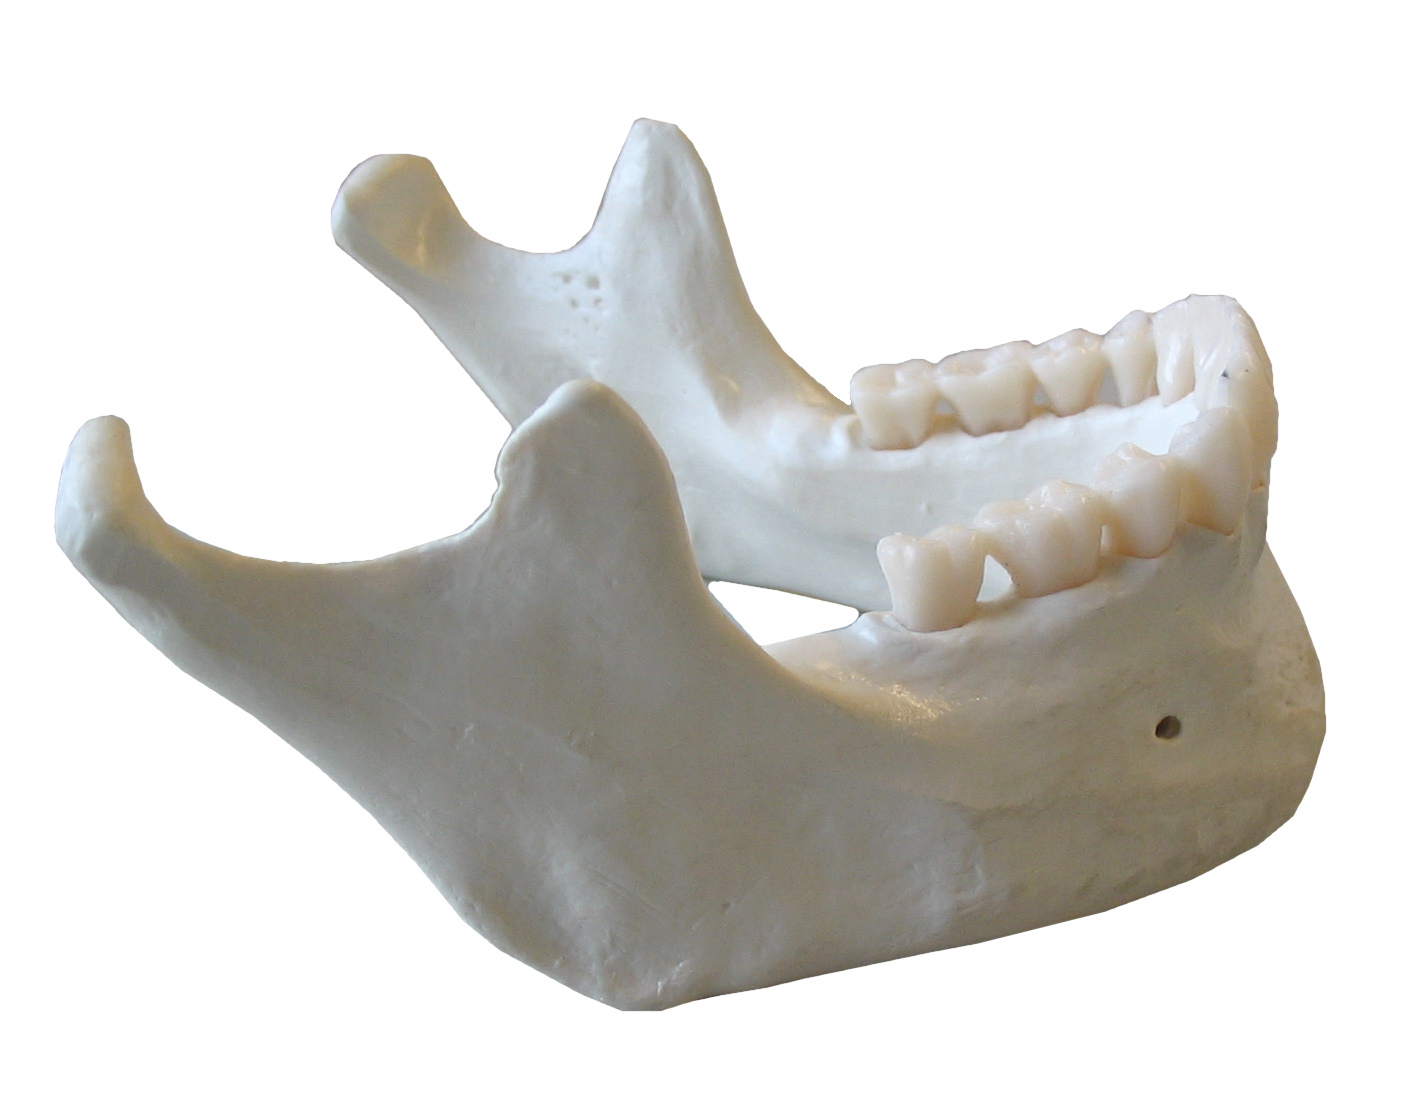 Only one person in 20 seeks treatment for their jaw pain